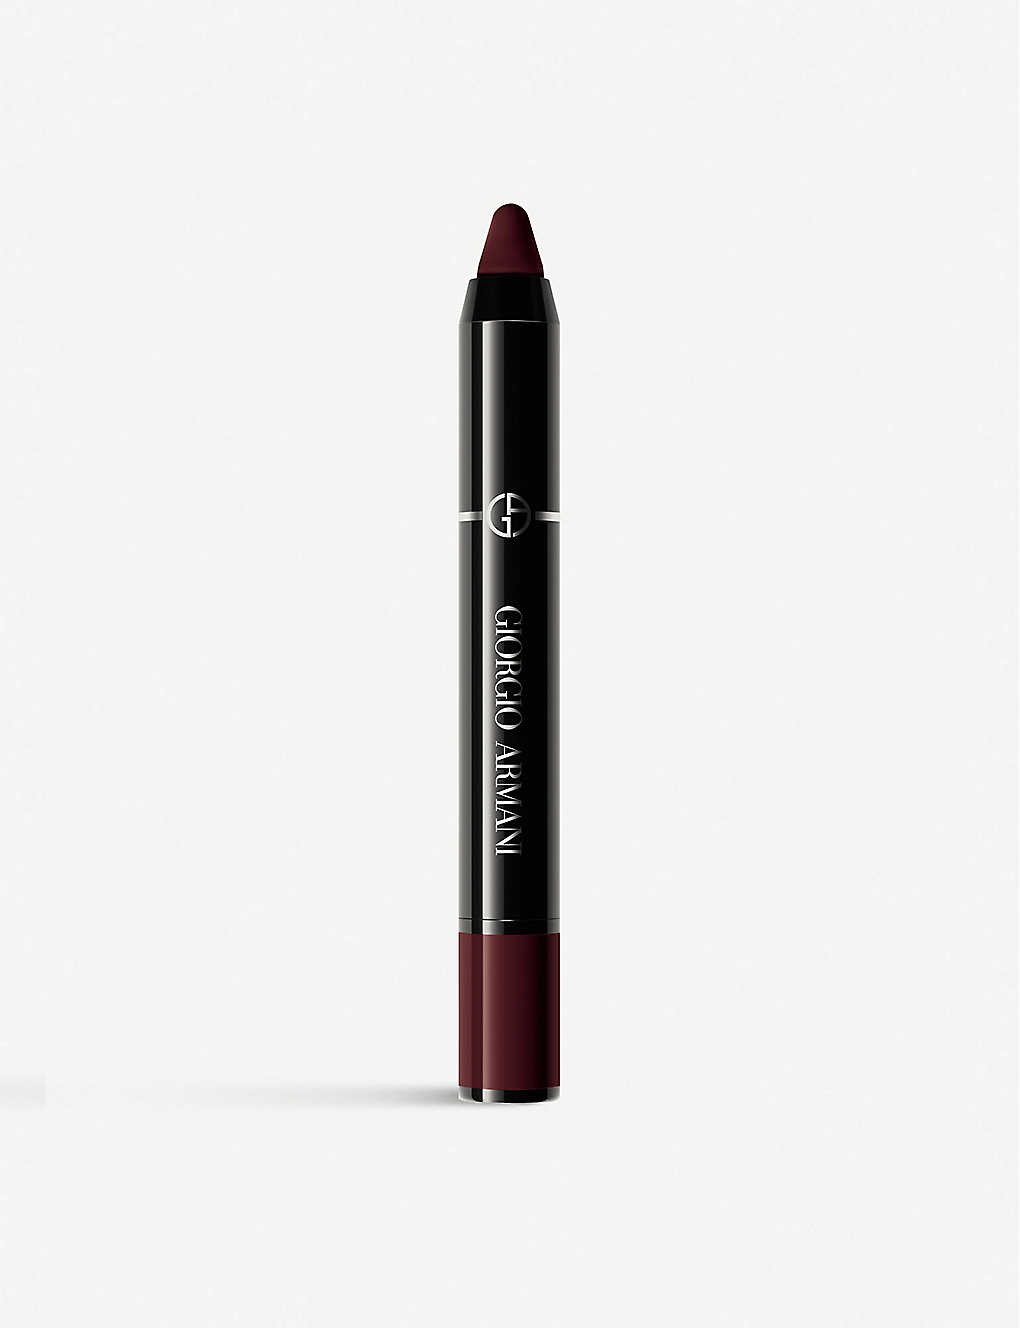 GIORGIO ARMANI: Colour Sketcher Multi-Purpose Satin Colour Lips and Cheeks